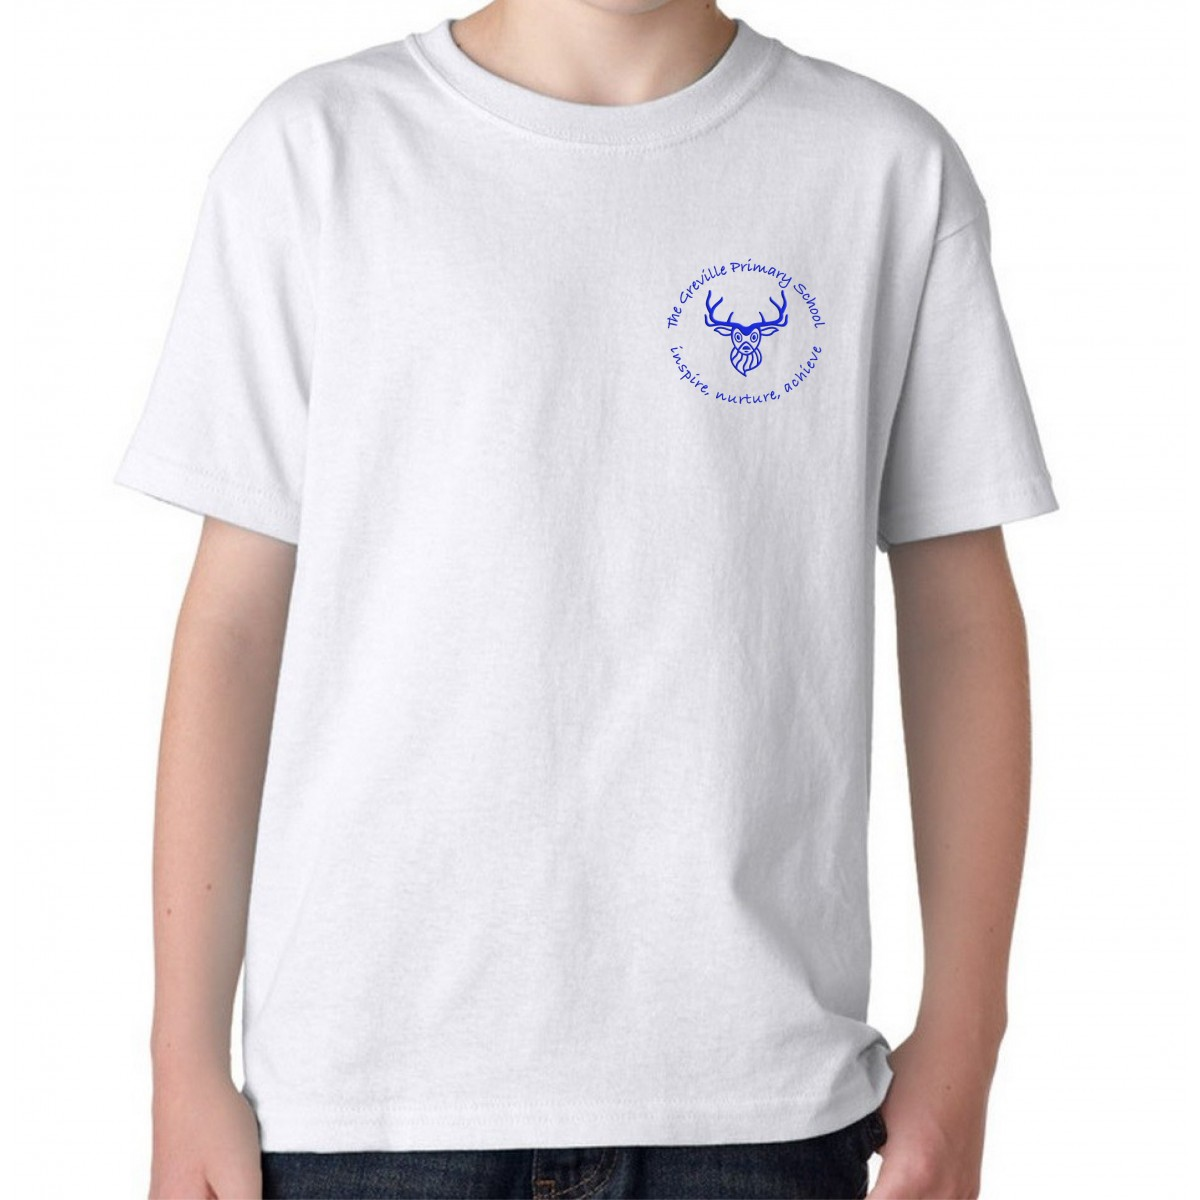 Greville pe t shirt girls the primary school